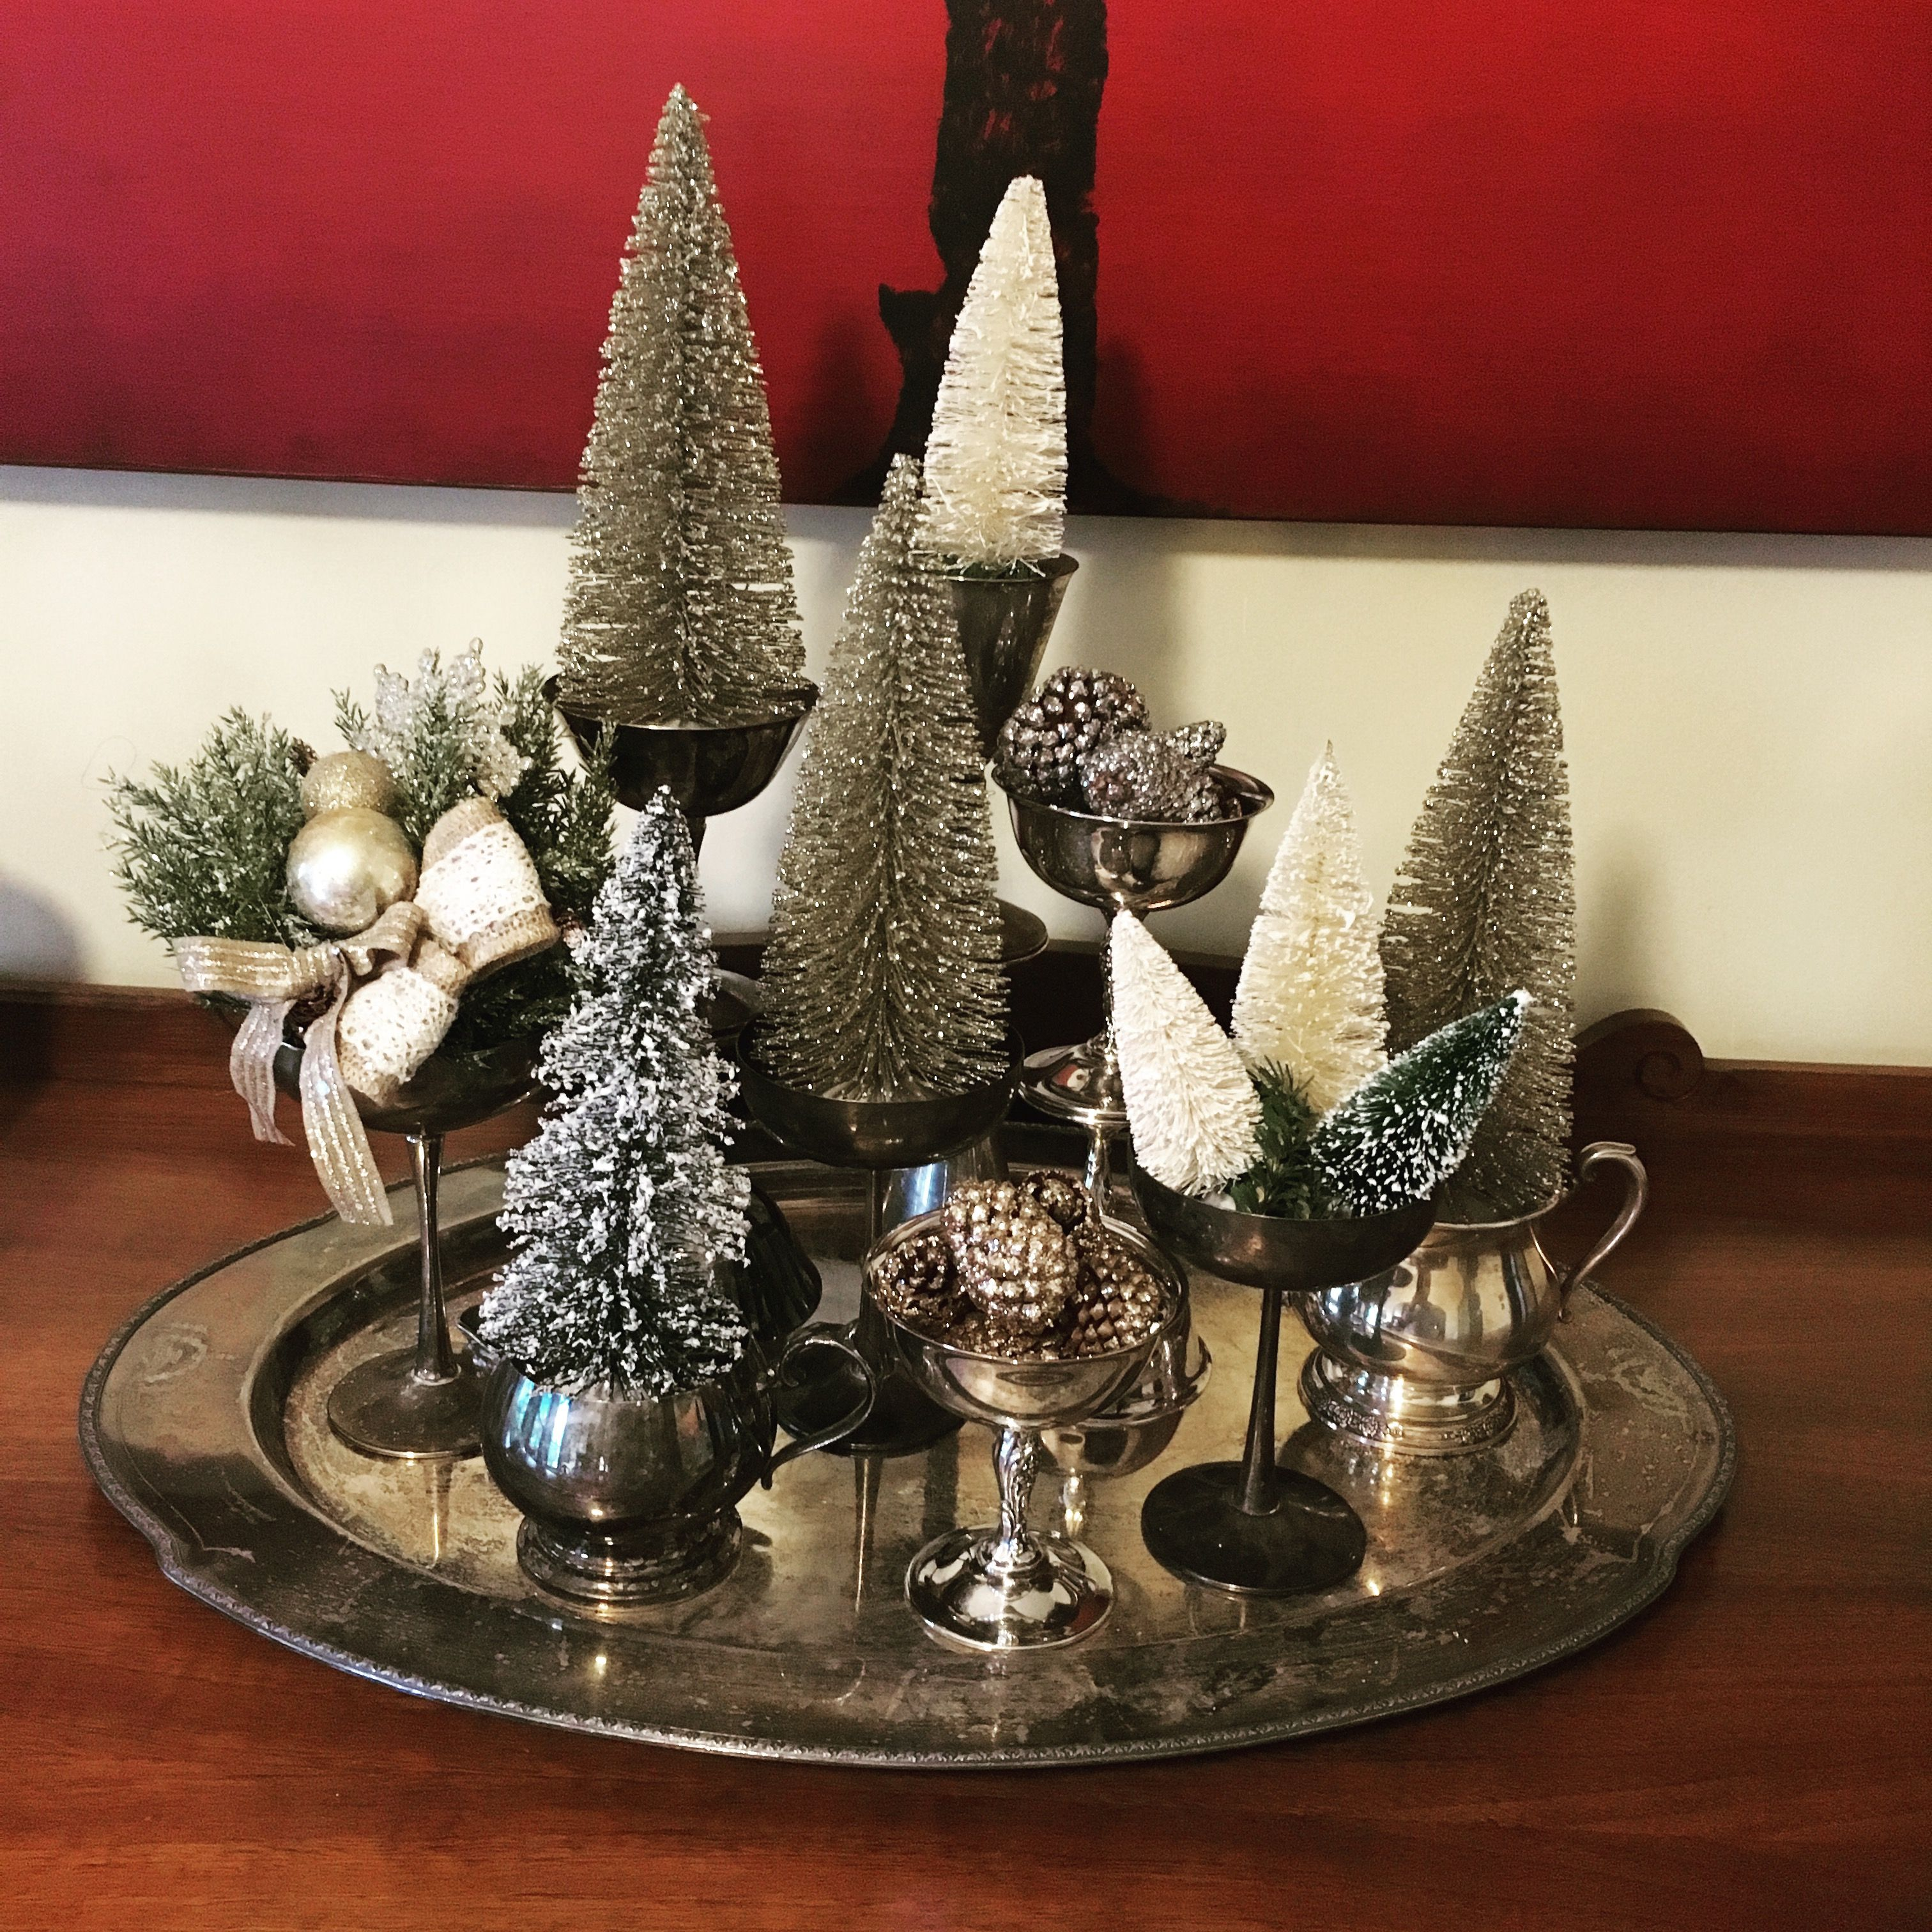 Vintage silver and bottle brush trees centerpiece. Home